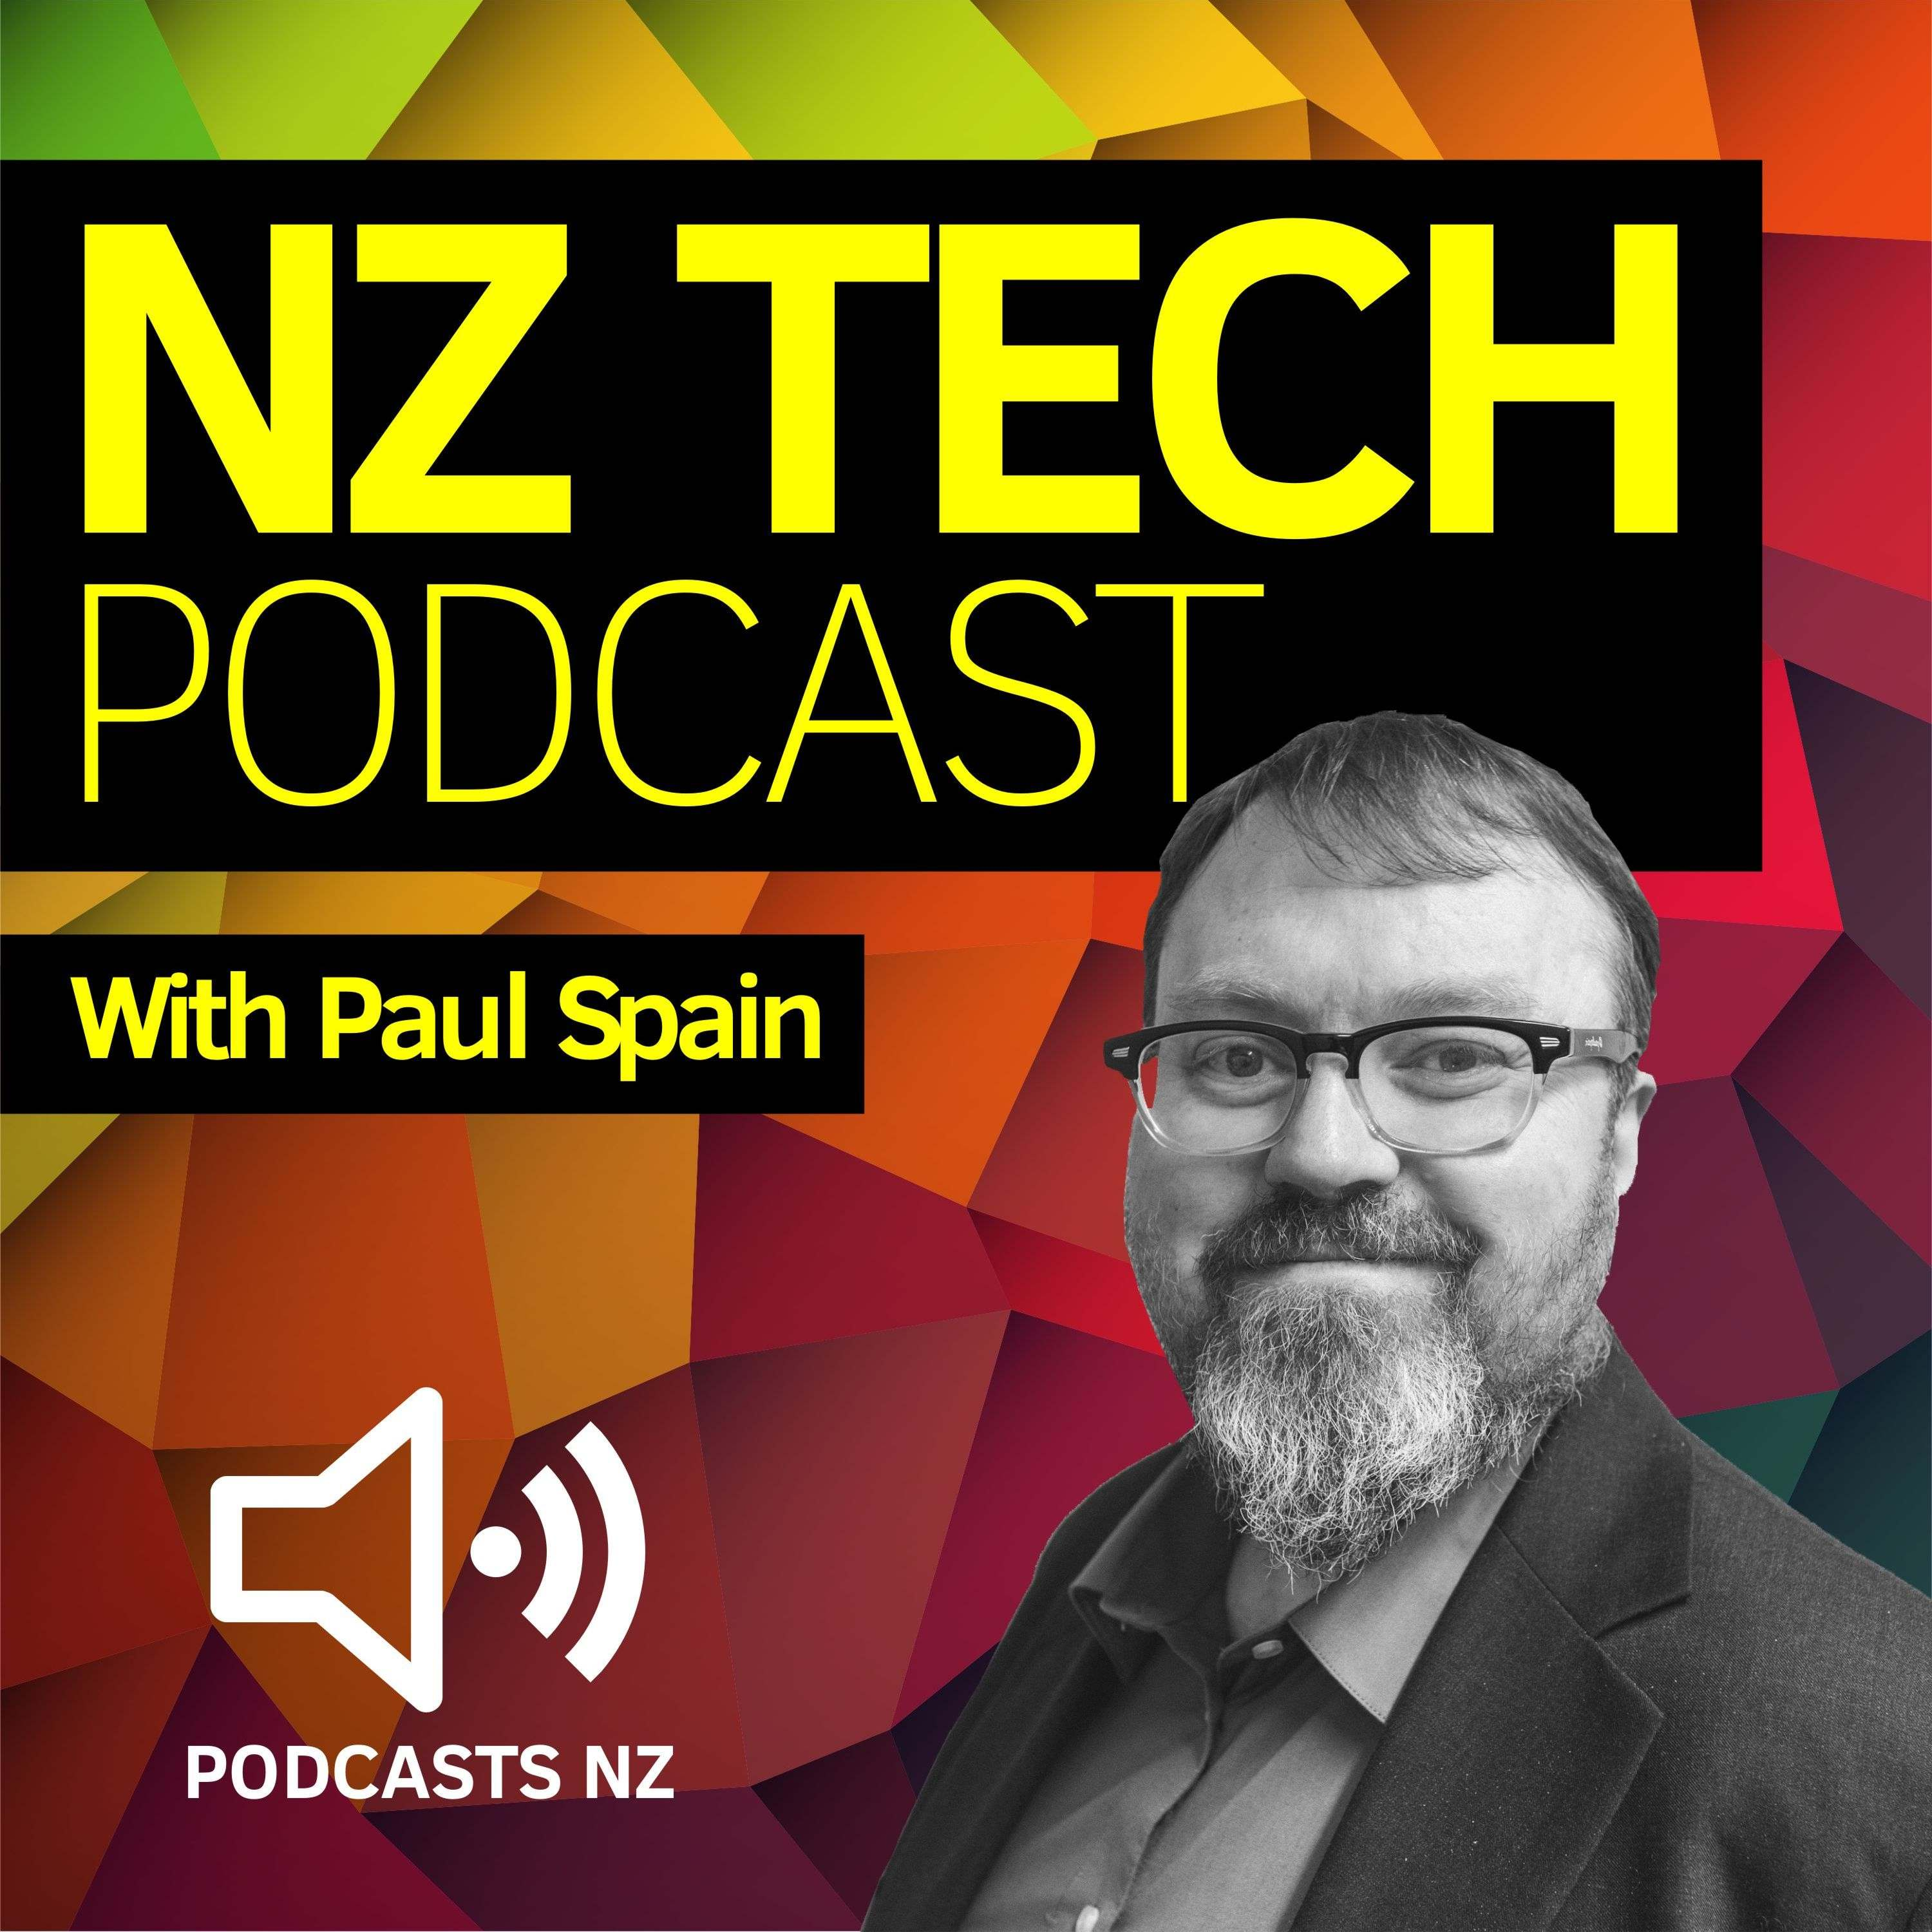 Artwork for NZ Tech Podcast 363: Living with iPhone X, Vodafone TV, Anki Overdrive, Xbox One X, Huawei Mate 10